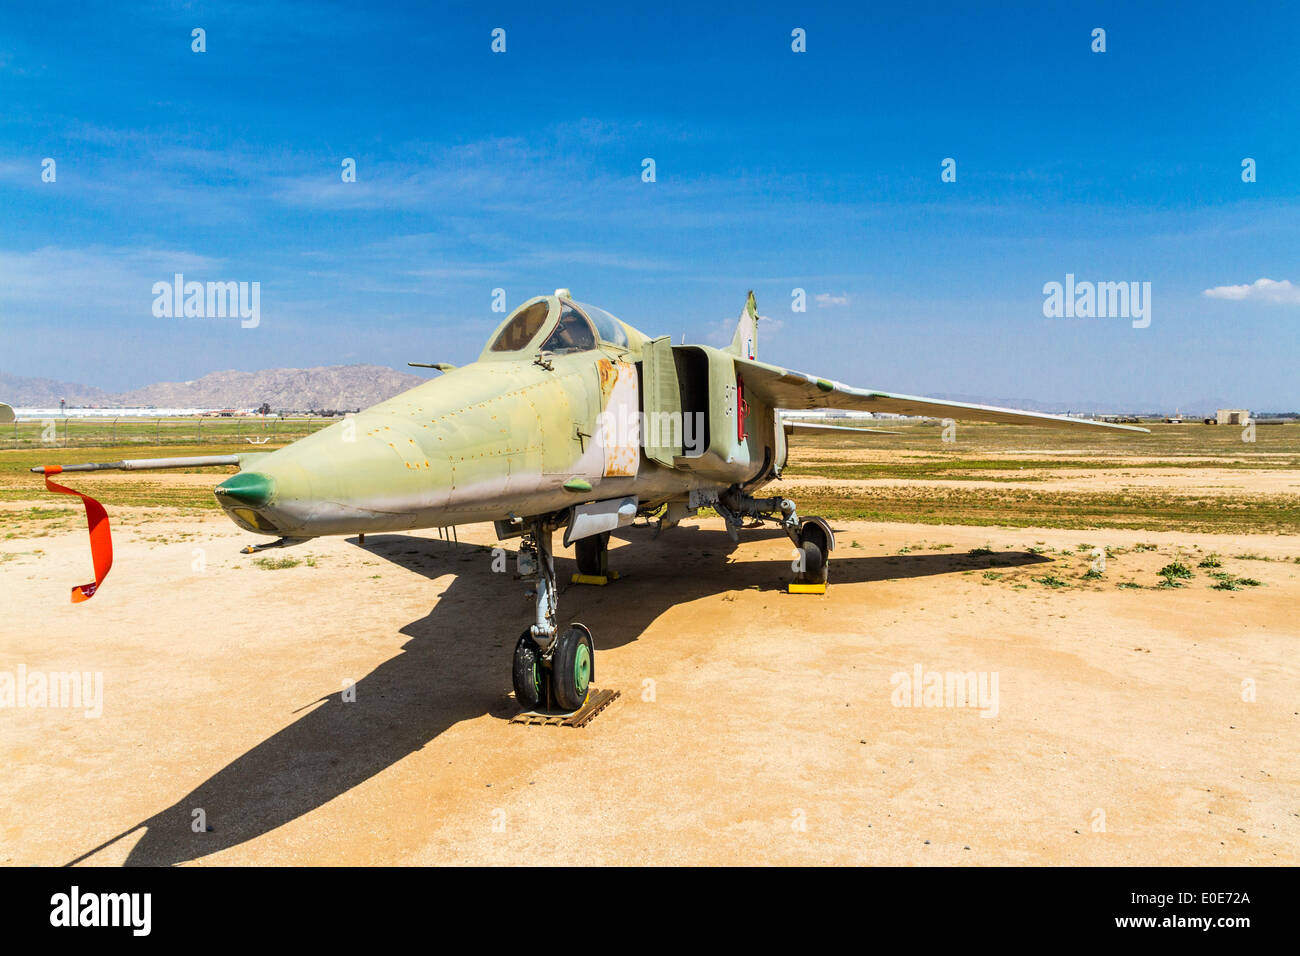 Mig 23 Stock Photos Mig 23 Stock Images Alamy Images, Photos, Reviews